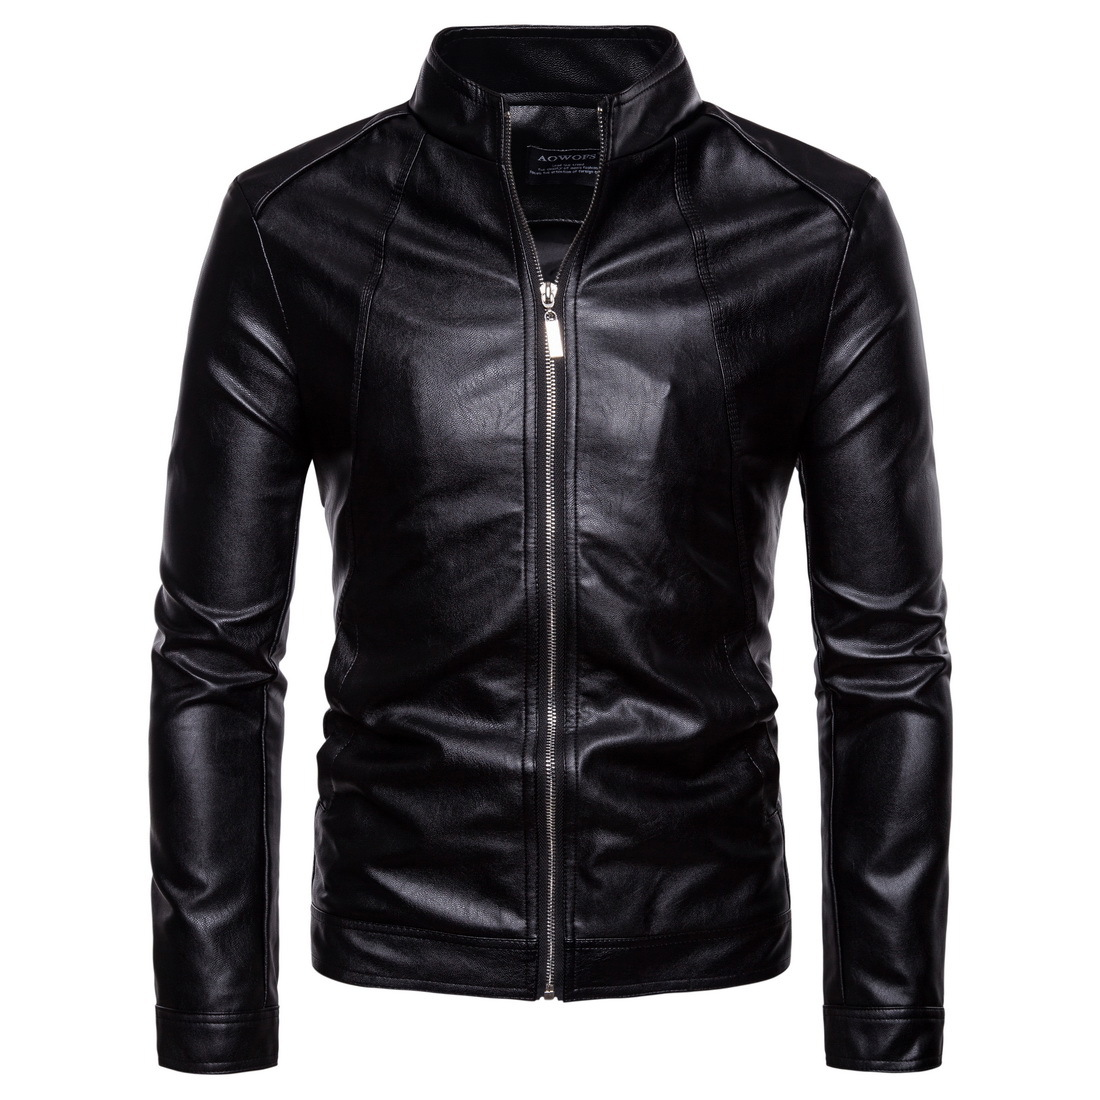 Leather Jacket Men 2018 Autumn Winter New Style Fashion Black Stand Collar Male Casual Motorcycle PU Leather Jacket Coat 5XL